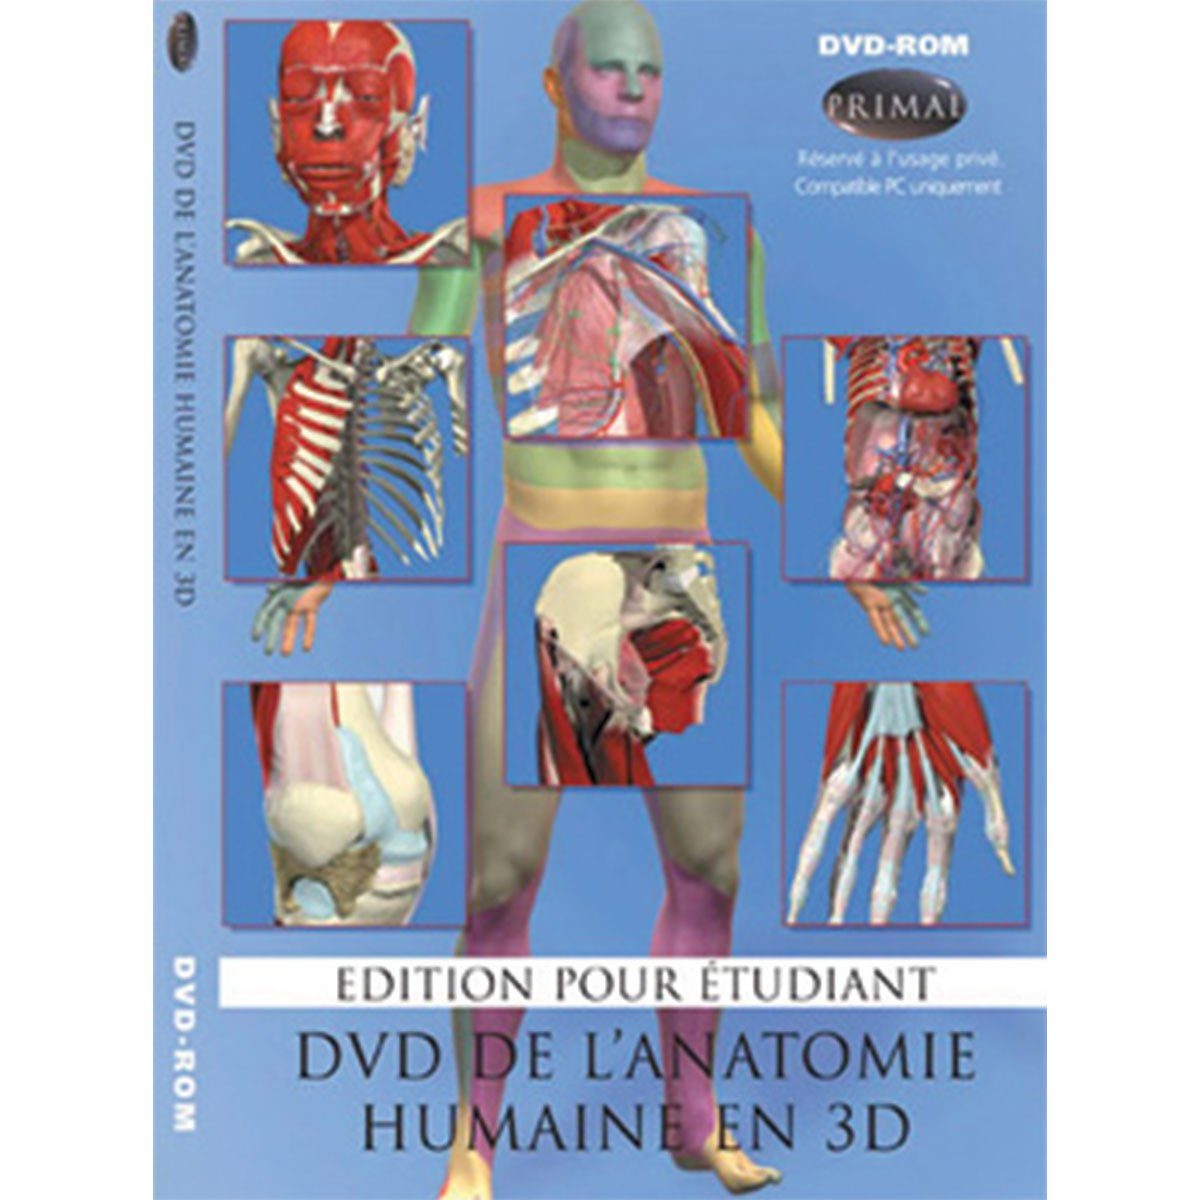 Primal Pictures 978-1-904369-967 3D Head and Neck Anatomy for Dentistry Students